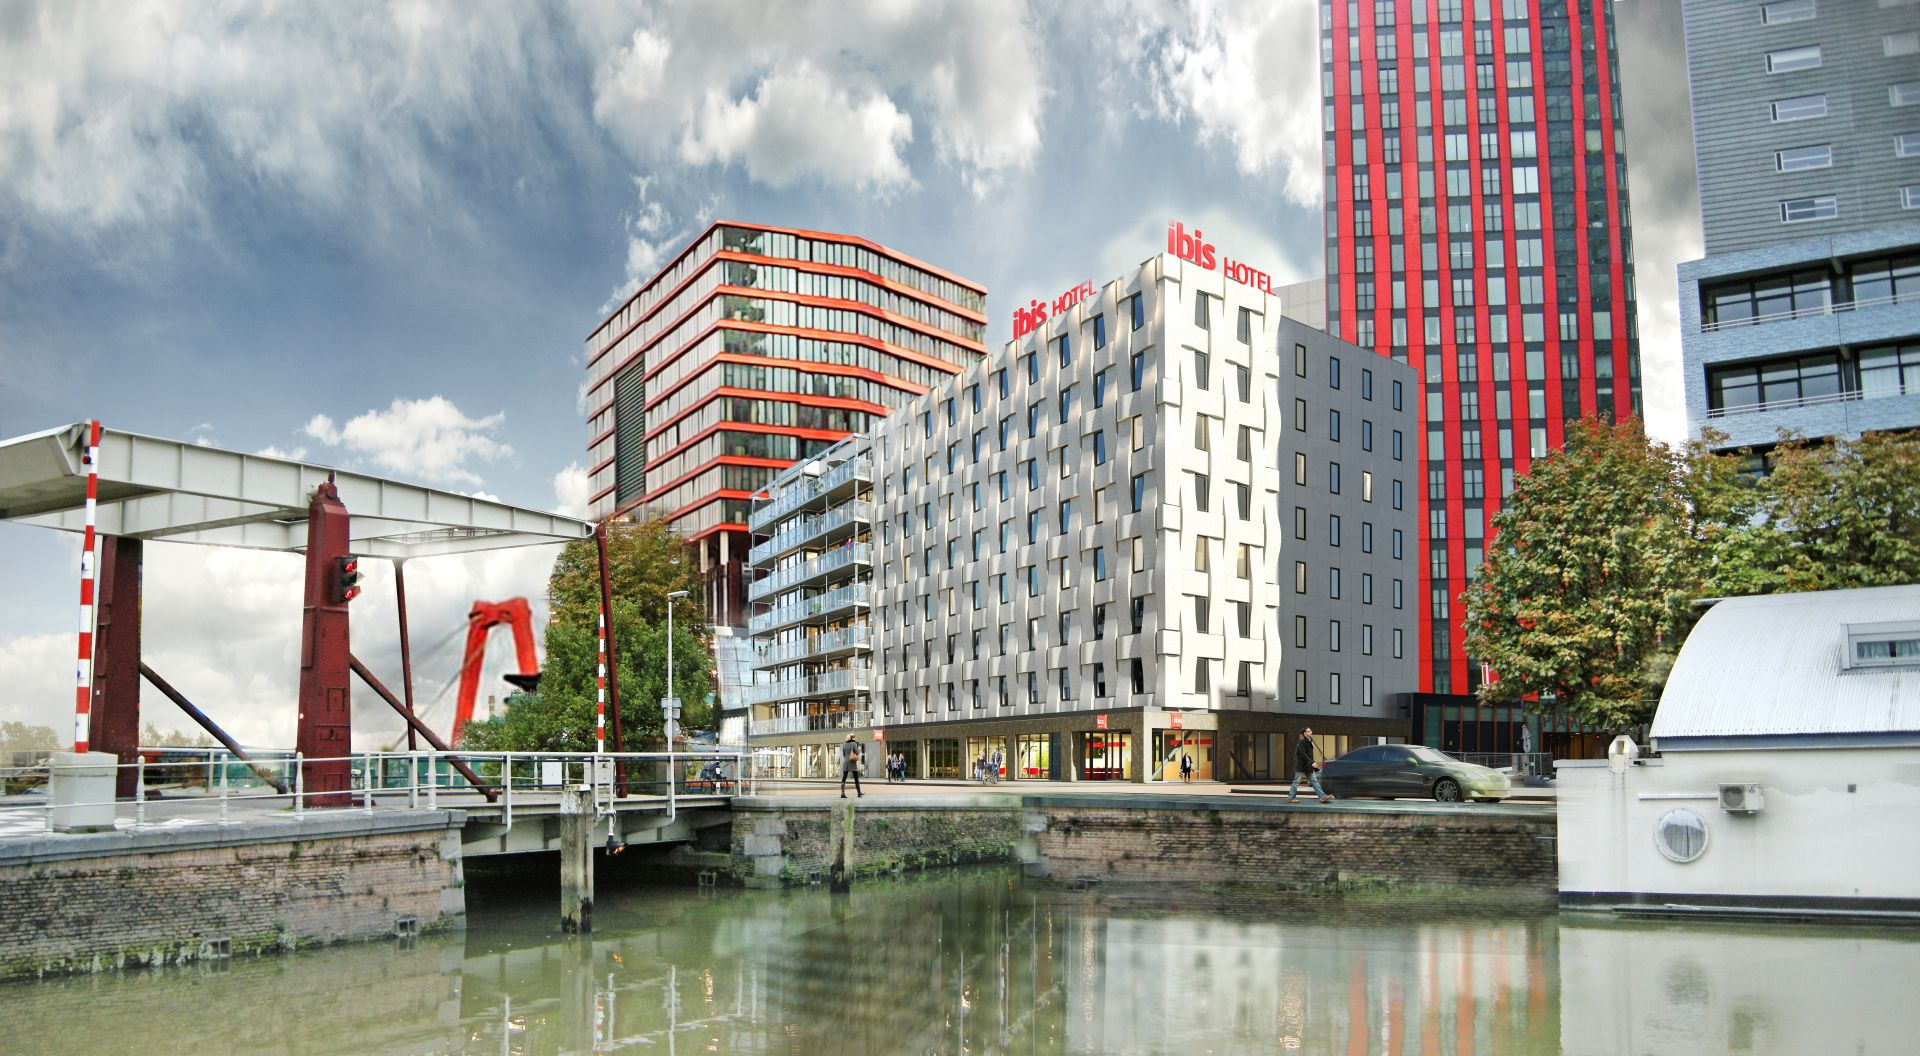 Ibis Rotterdam City Centre officieel geopend. Bron: FranchiseFormules.NL